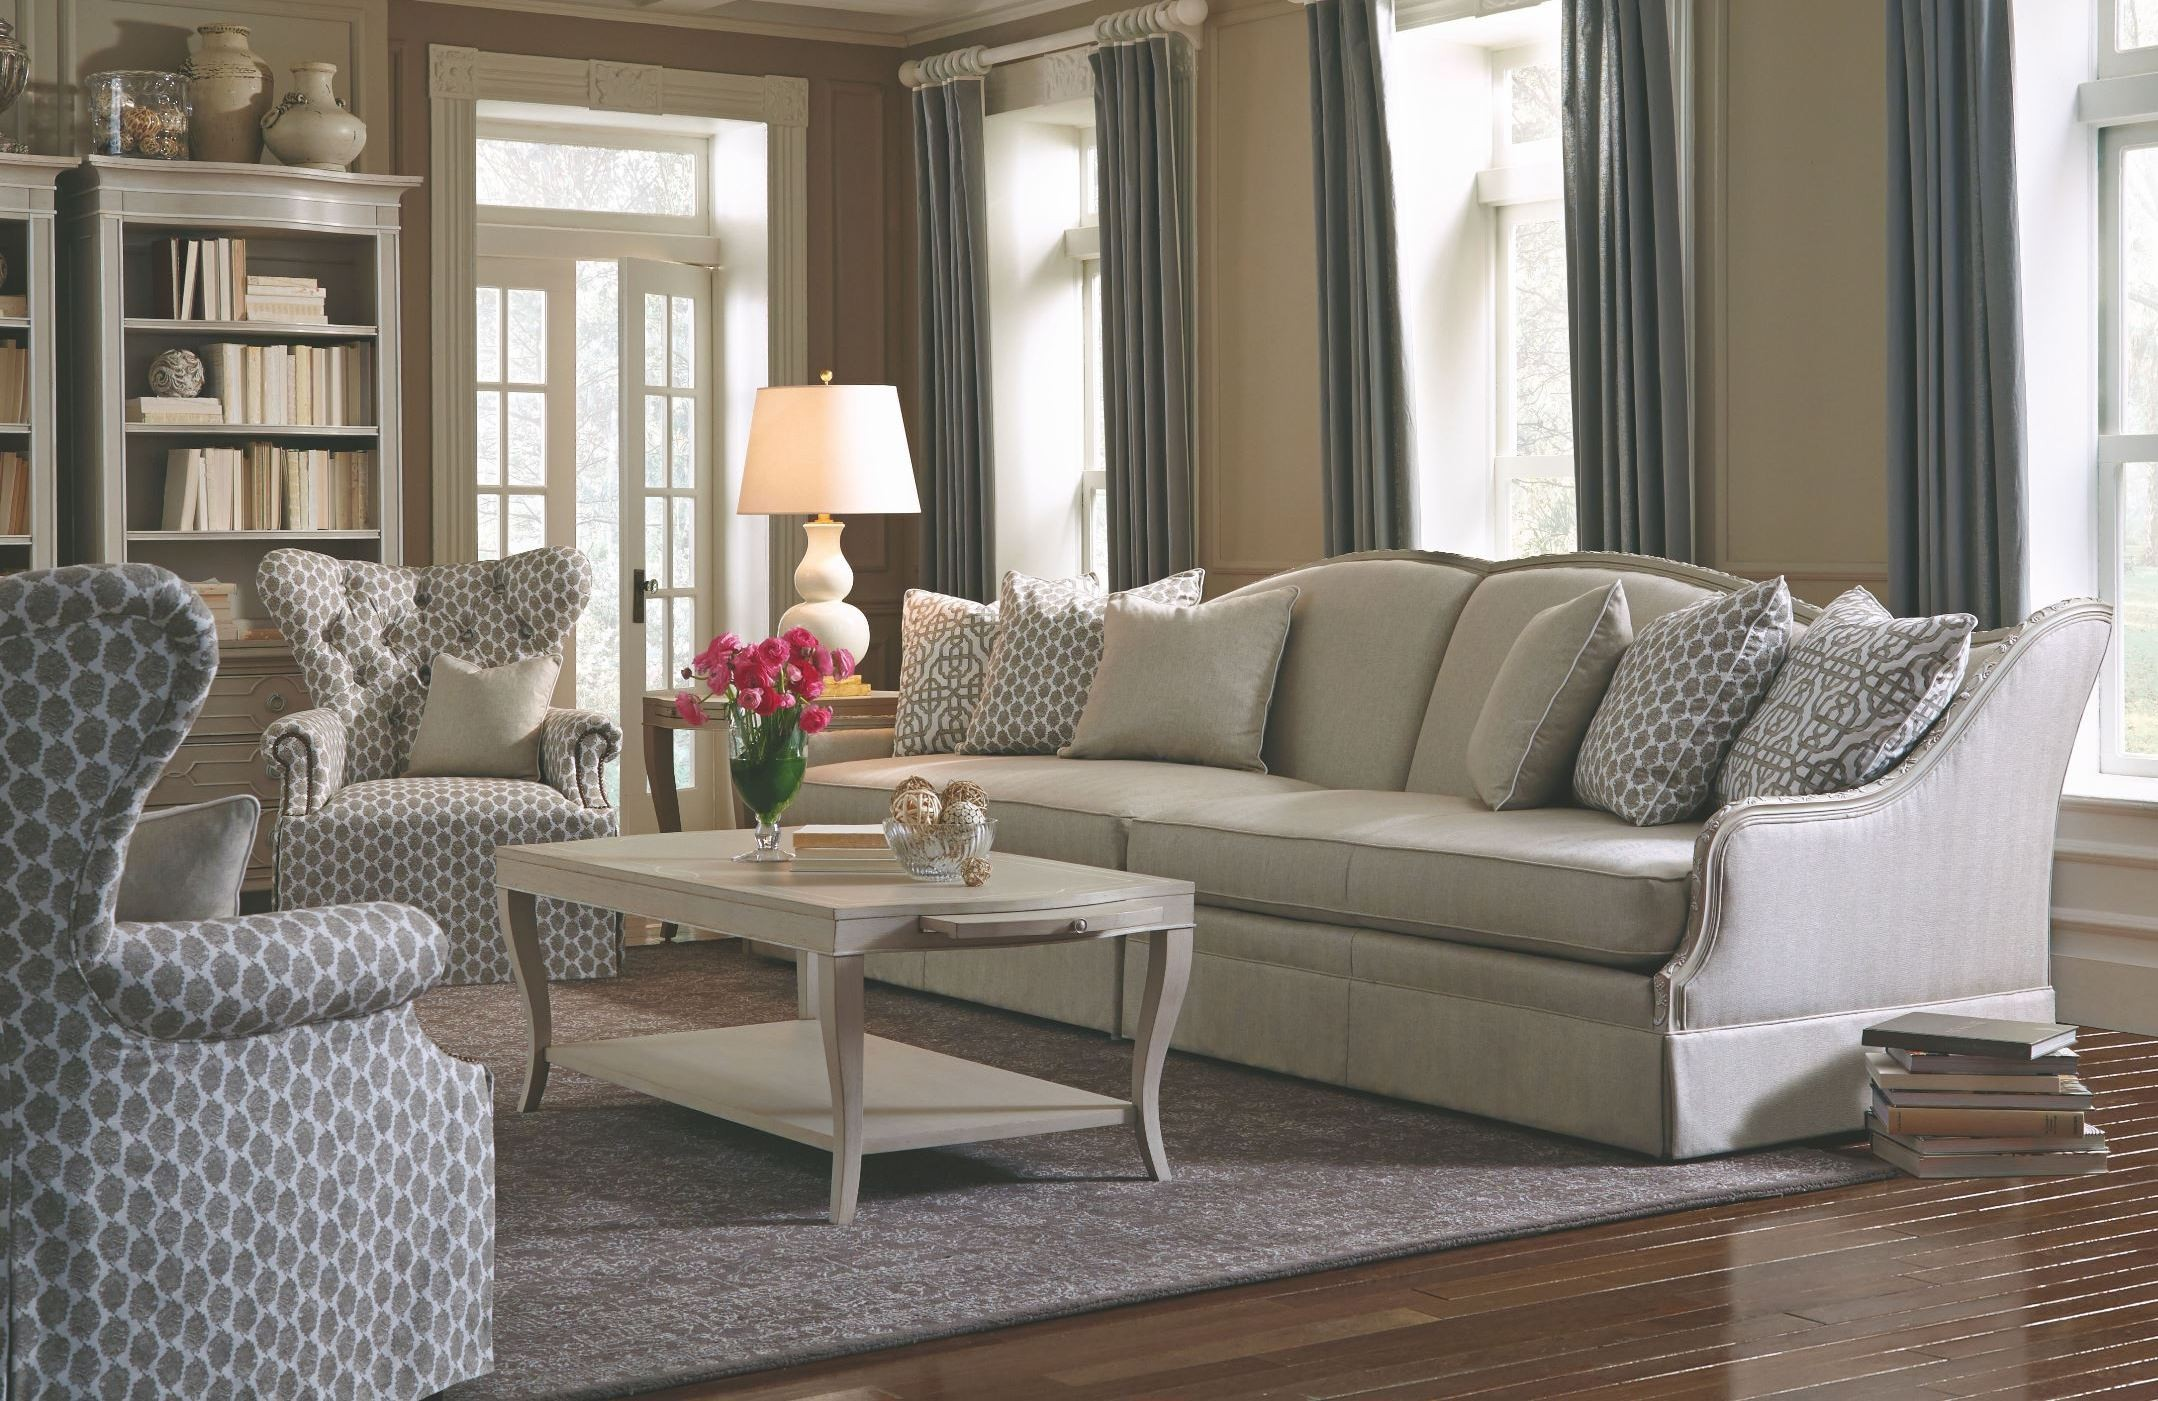 Ava grey living room set from art 513521 5011aa for Grey living room sets